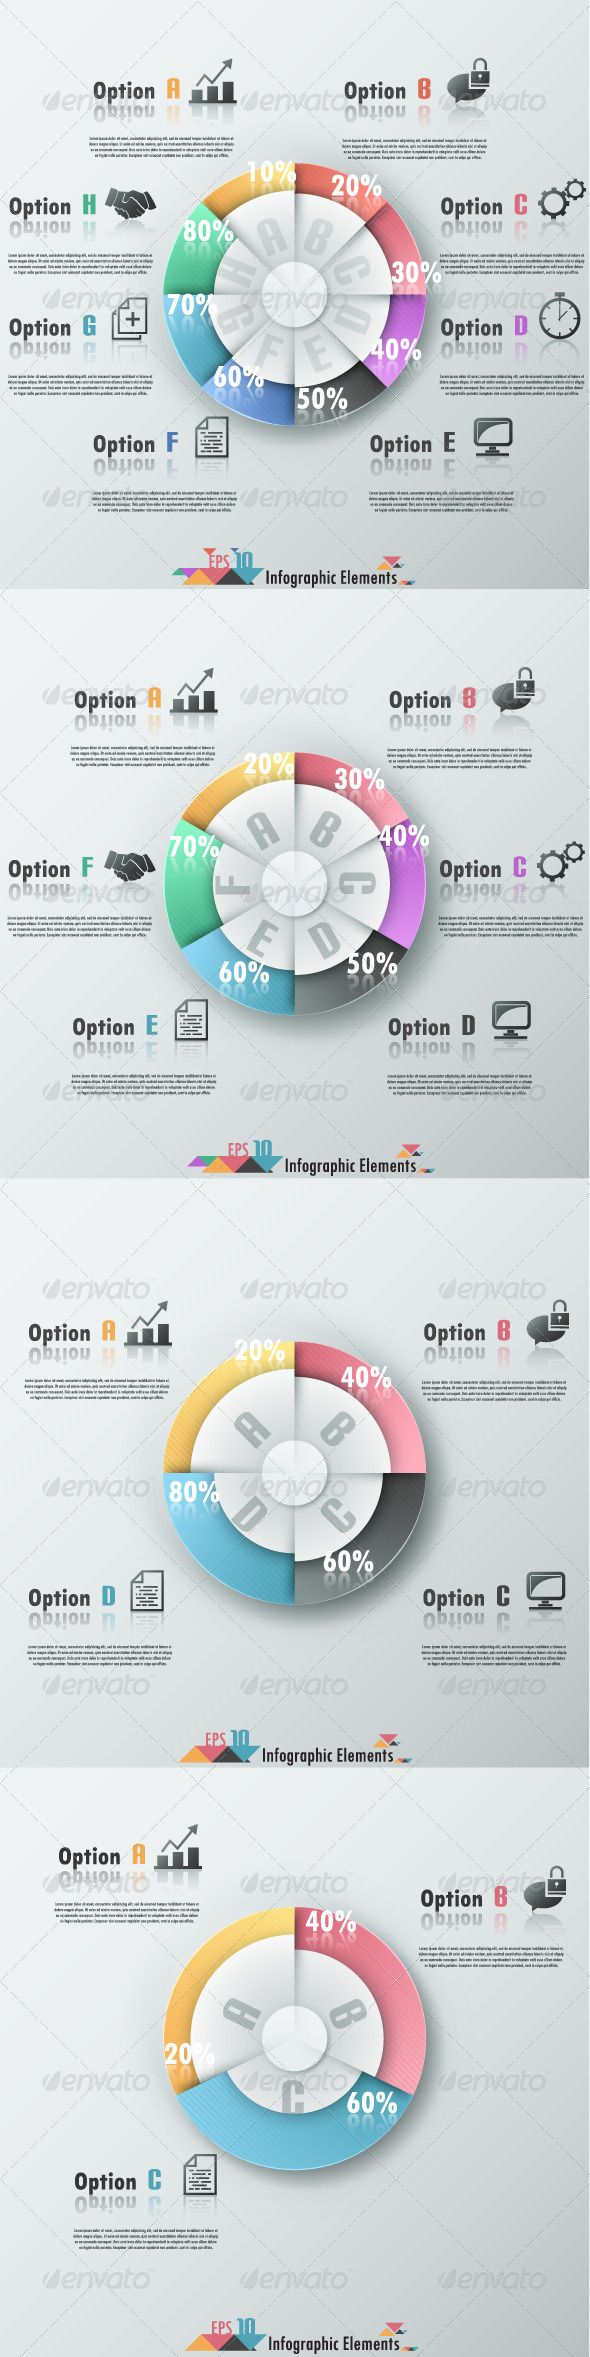 Pie Chart Templates Captivating Modern Infographic Banner With Pie Chart  Pie Charts Infographic .